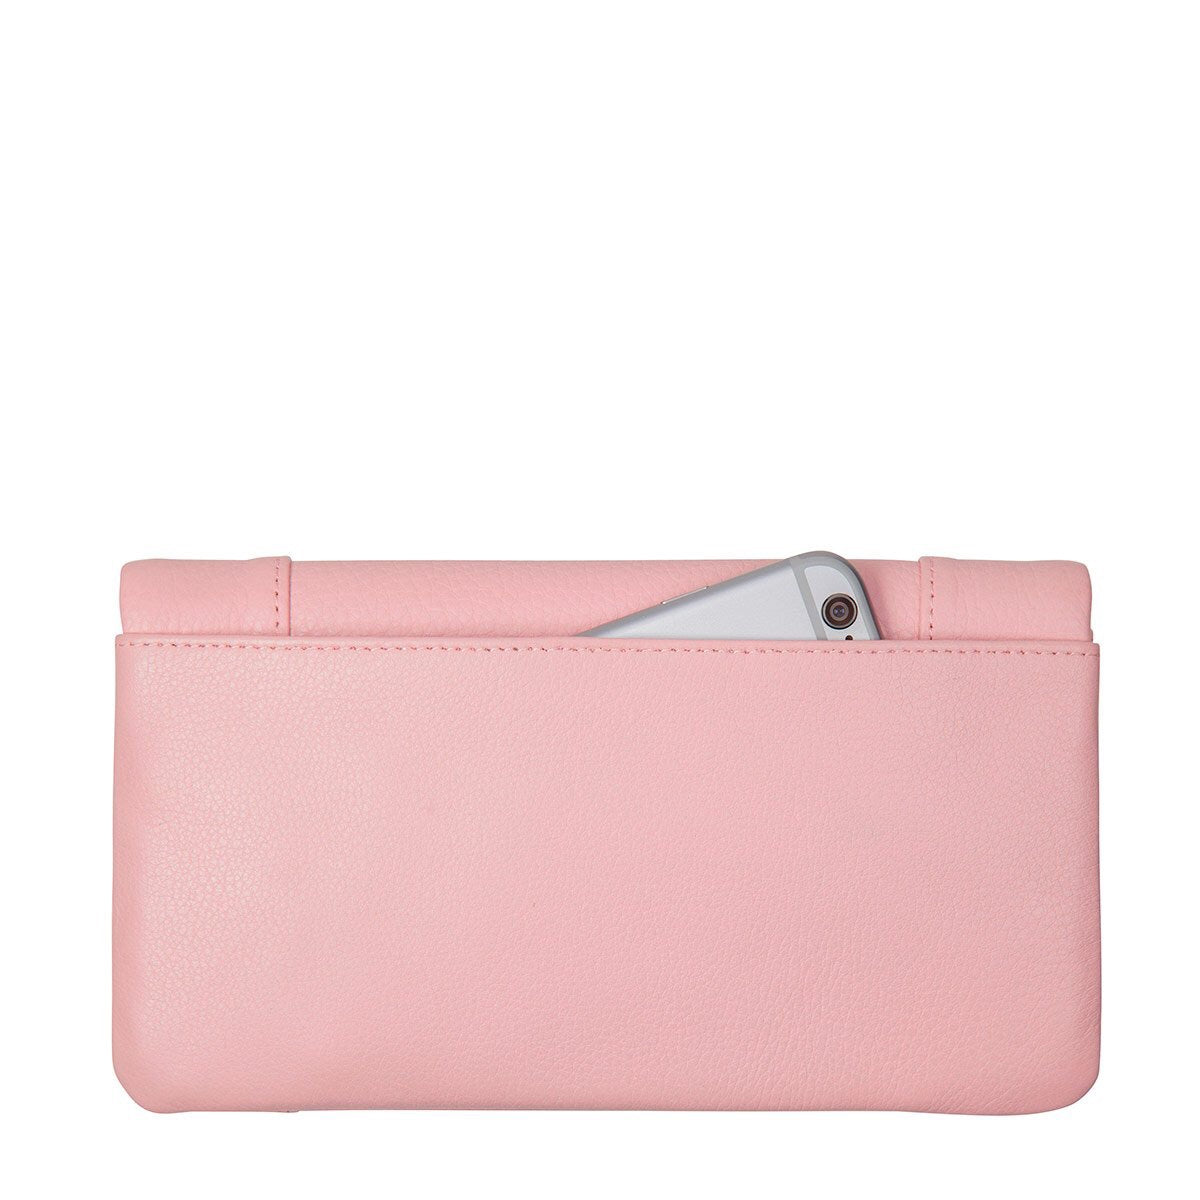 Status Anxiety - Some Type Of Love Wallet in Soft Pink